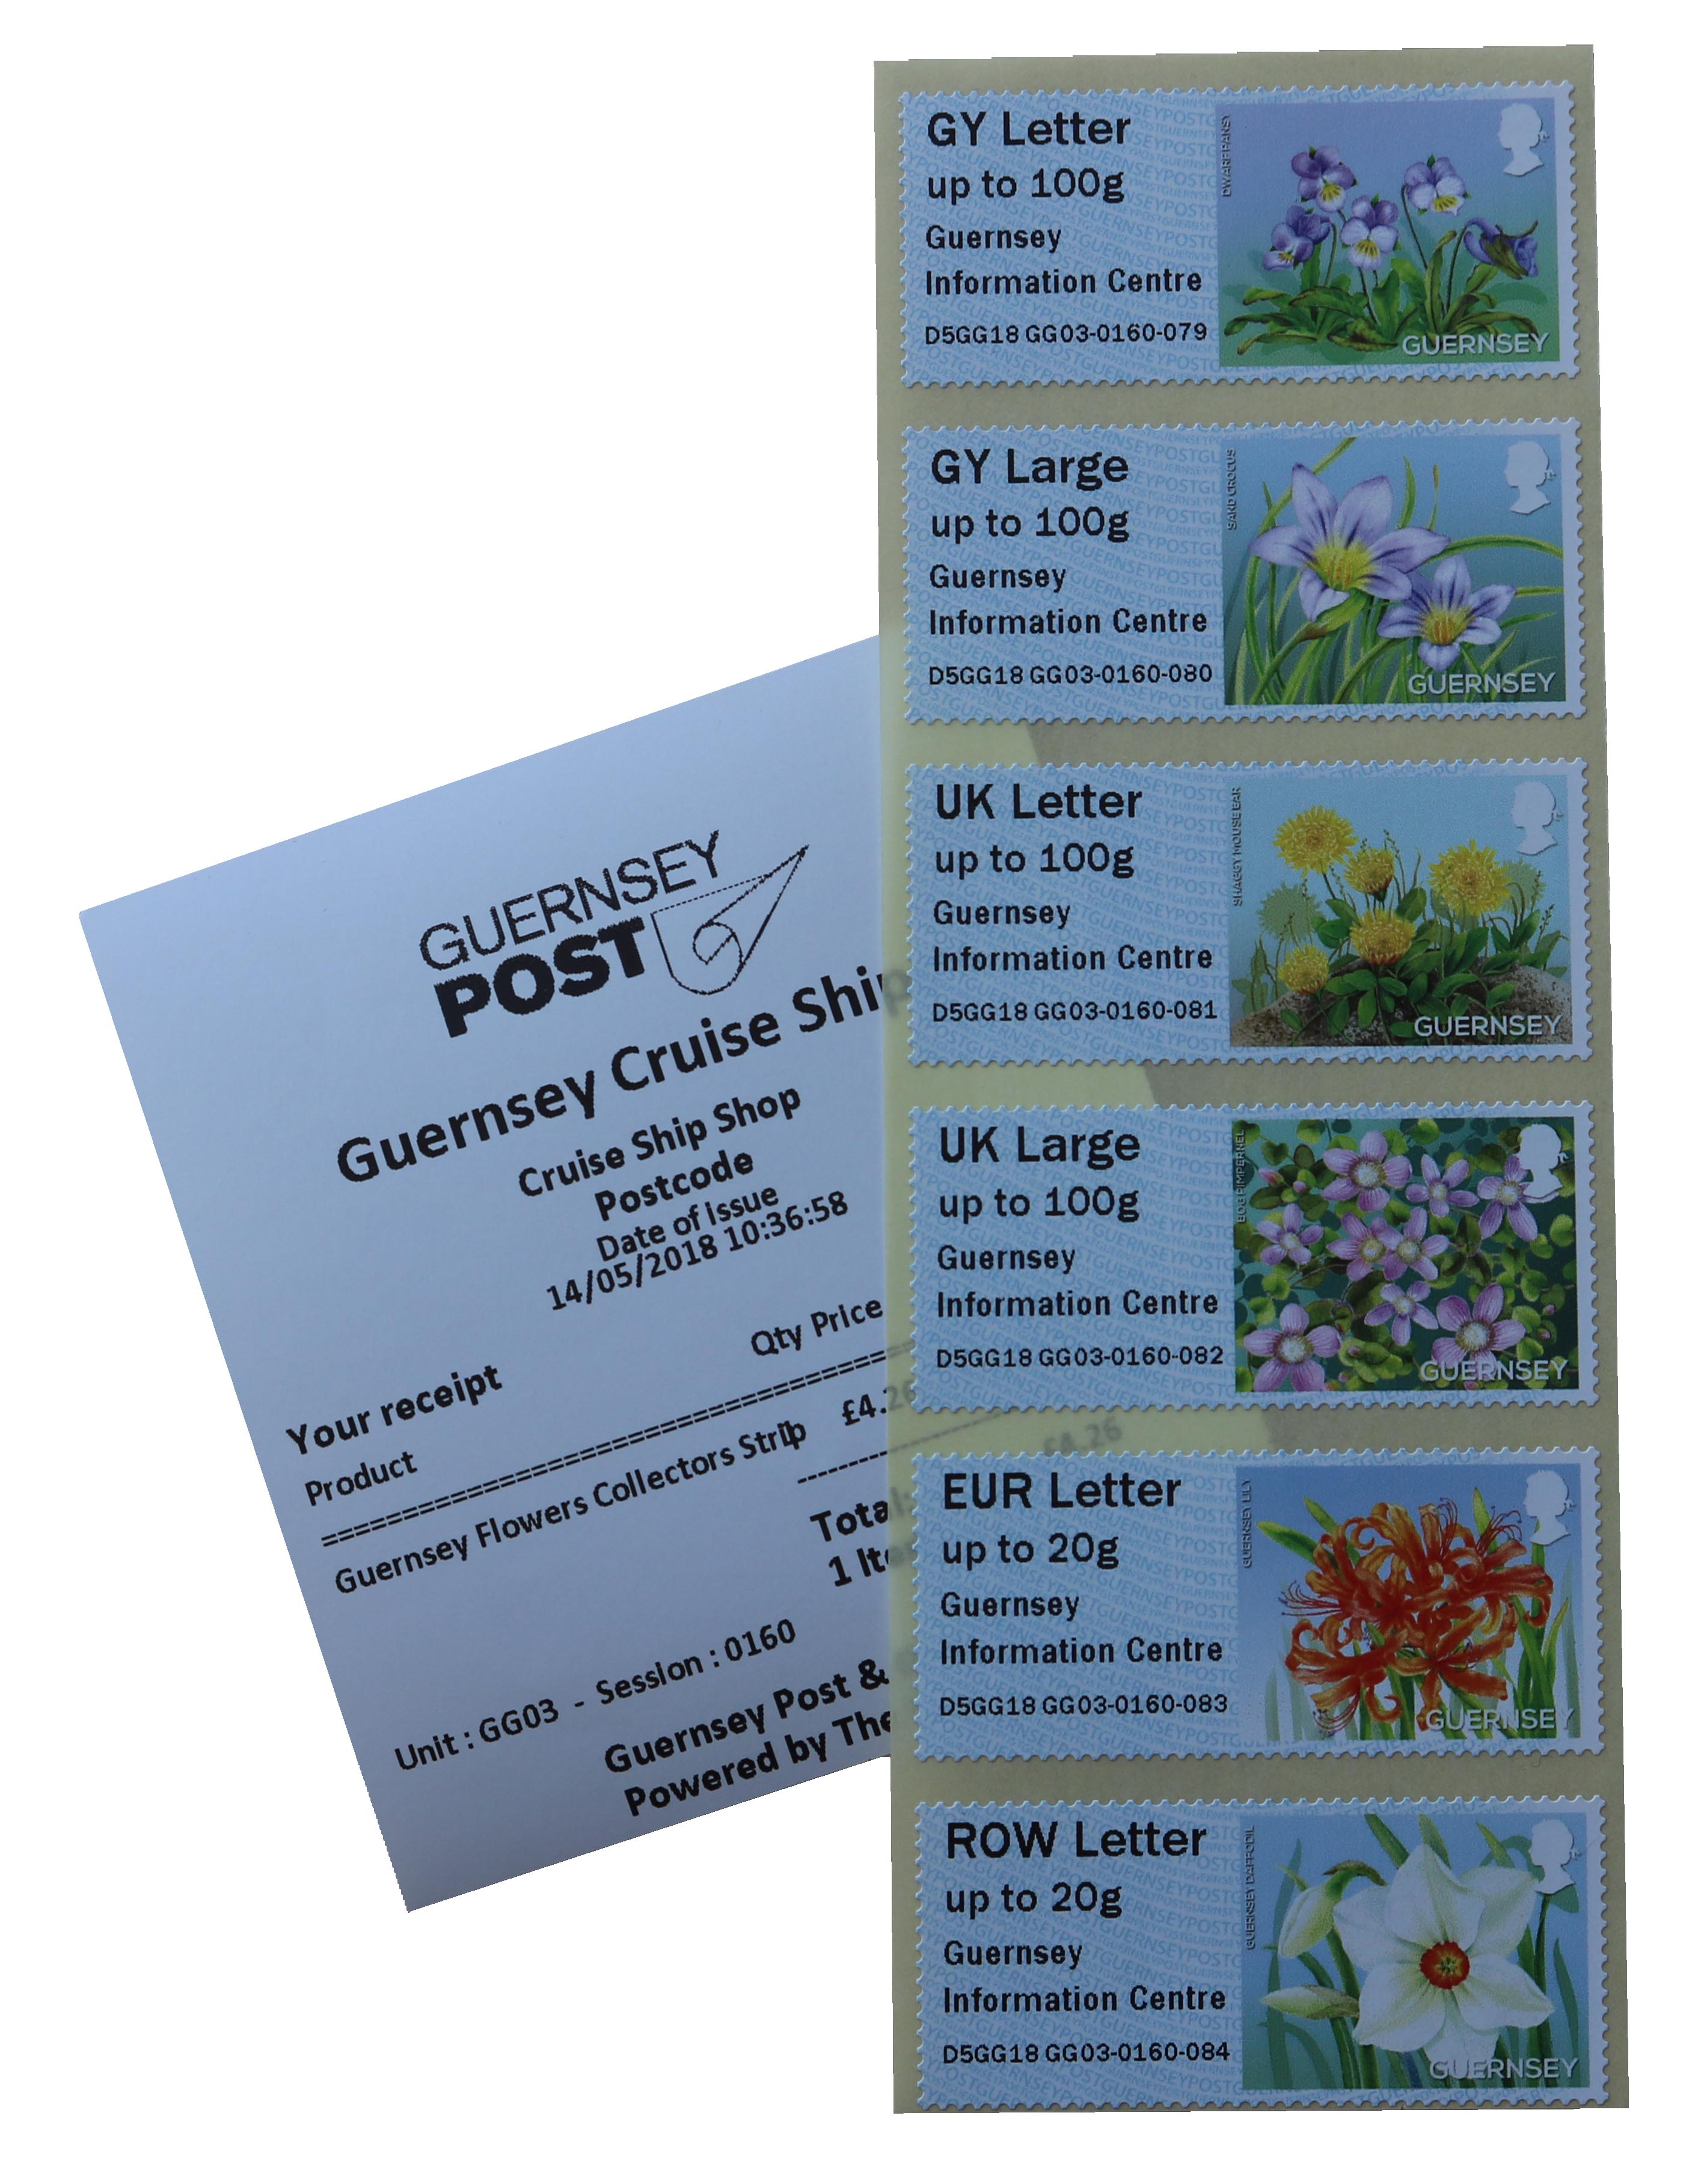 G Series Guernsey Information Centre Bailiwick Flowers locator overprint